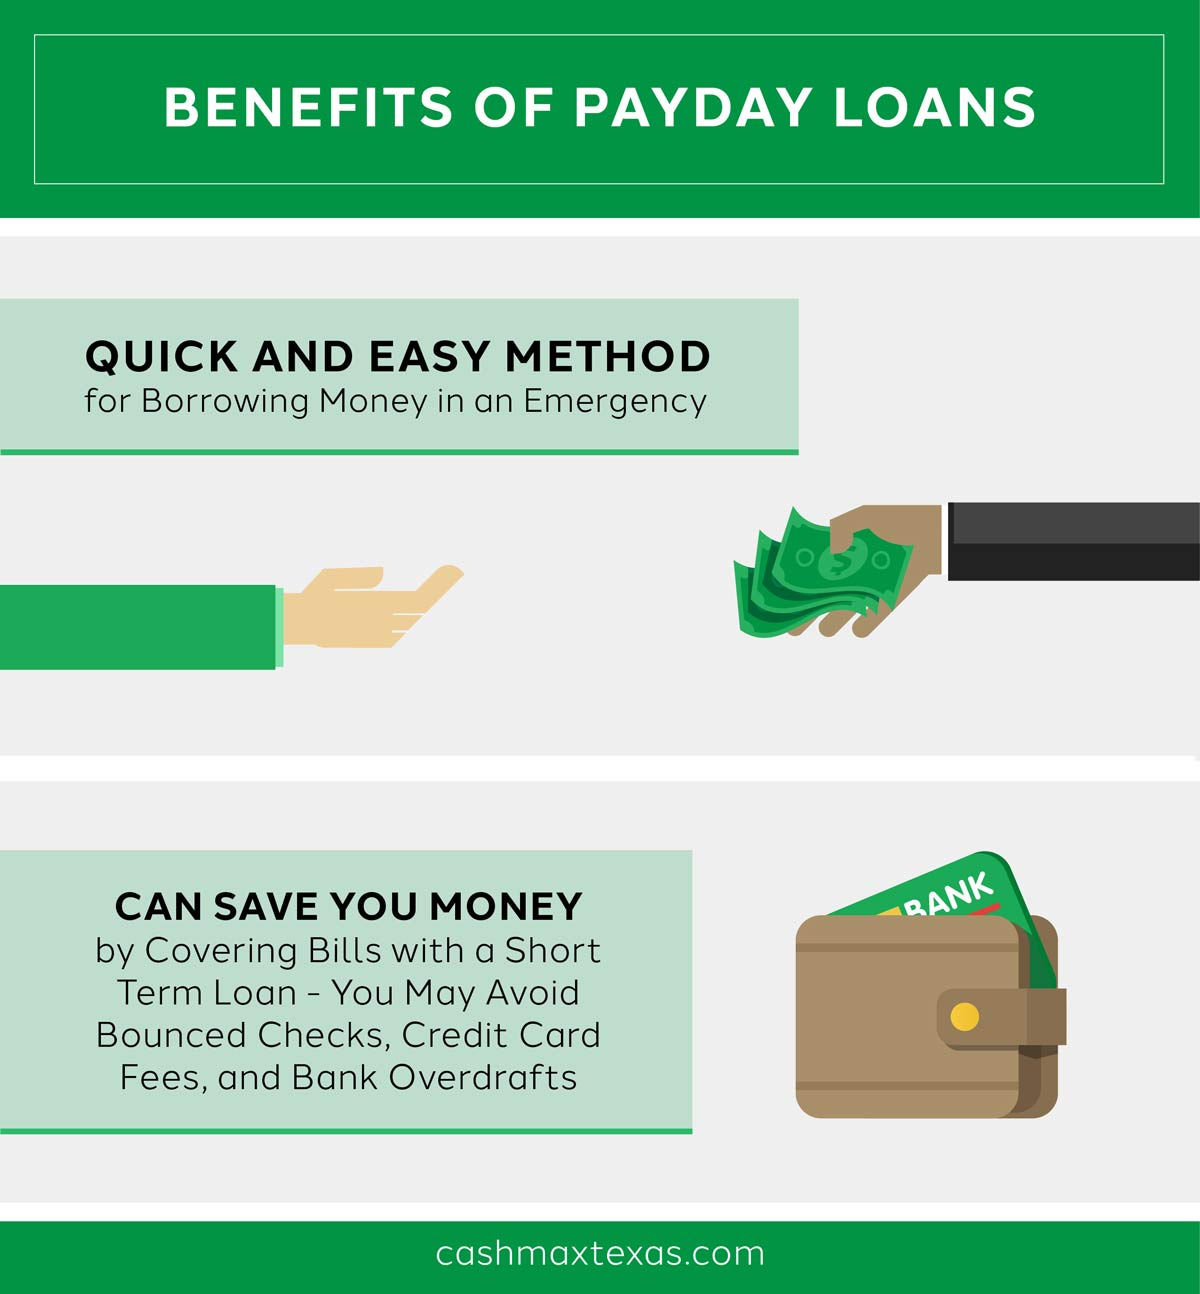 CashMax payday loan information